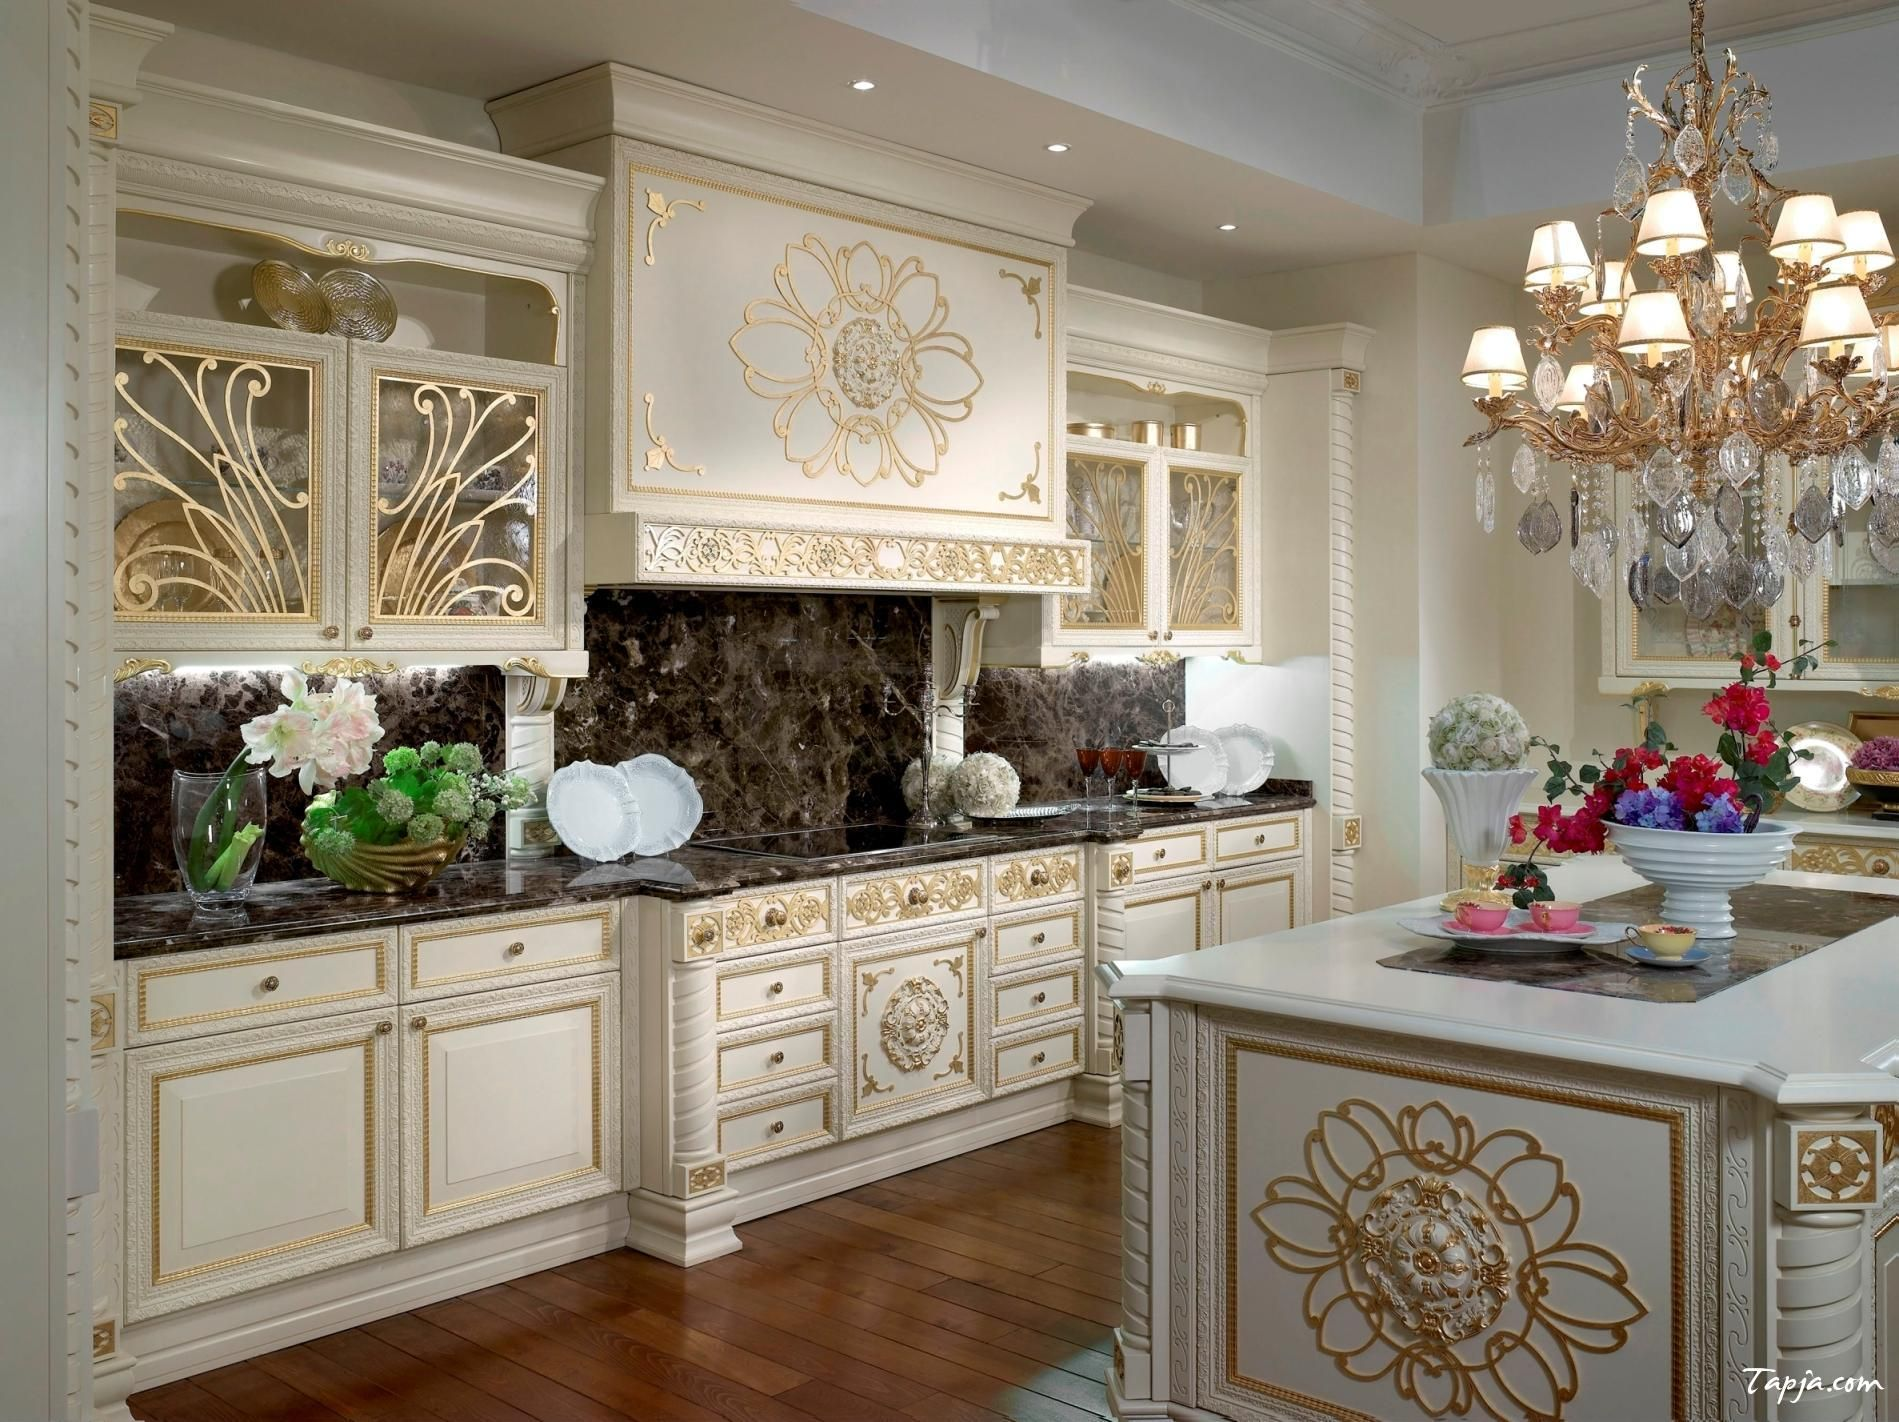 Luxury Kitchens, Luxury Kitchen Design, Fancy Kitchens, Kitchen Design  Gallery, Hardwood Floors